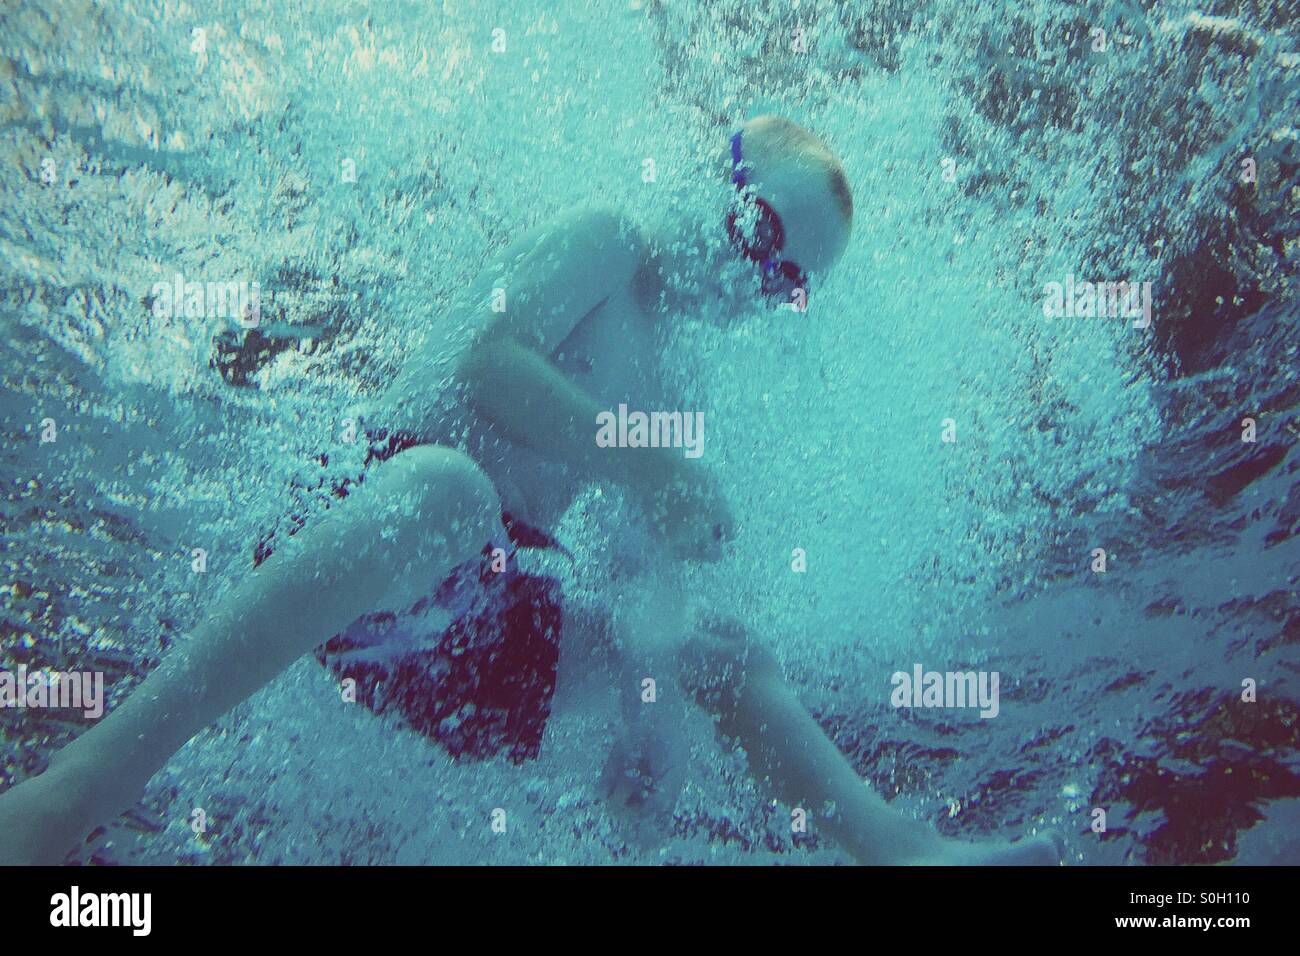 Dynamic underwater shot of a young boy diving into water, as seen from below. - Stock Image